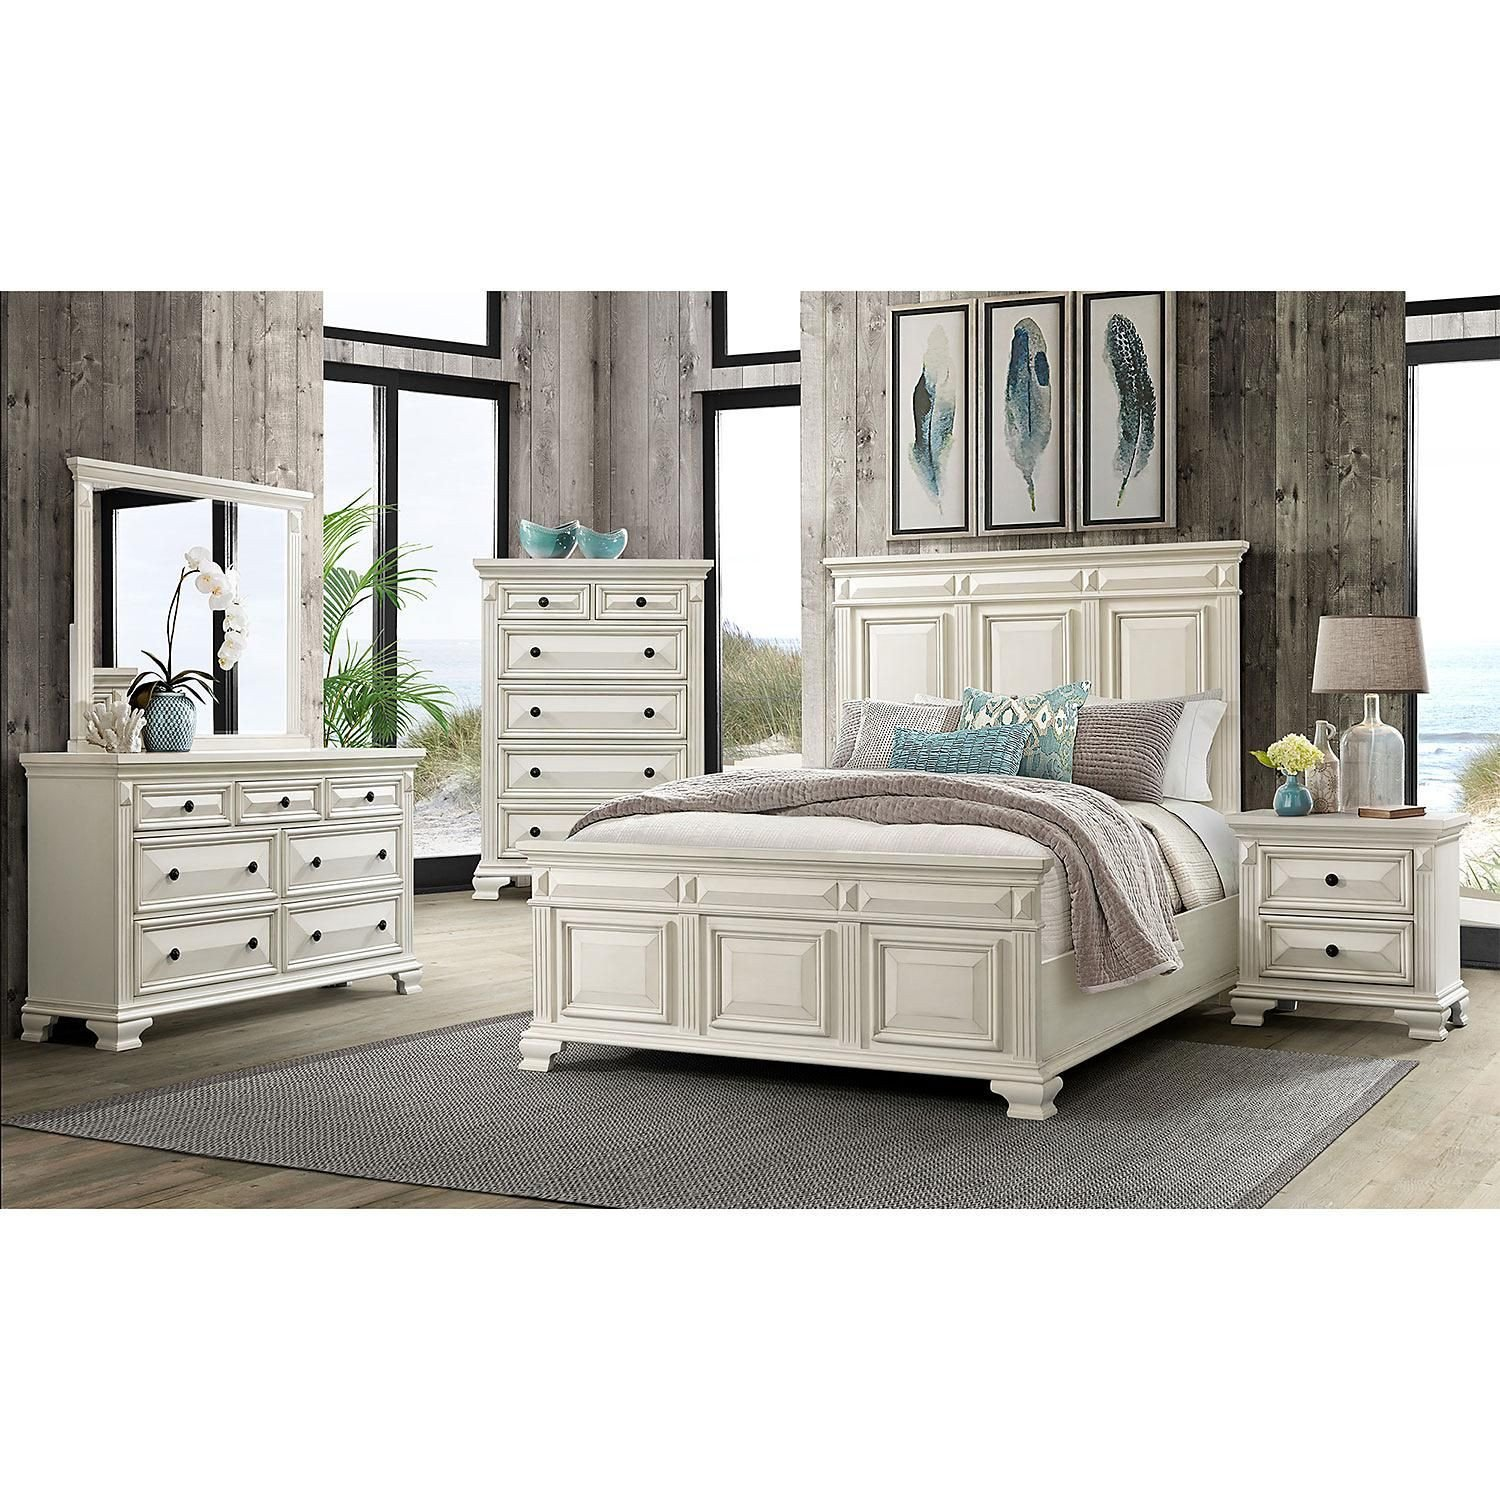 Cheap King Bedroom Set New $1599 00 society Den Trent Panel 6 Piece King Bedroom Set